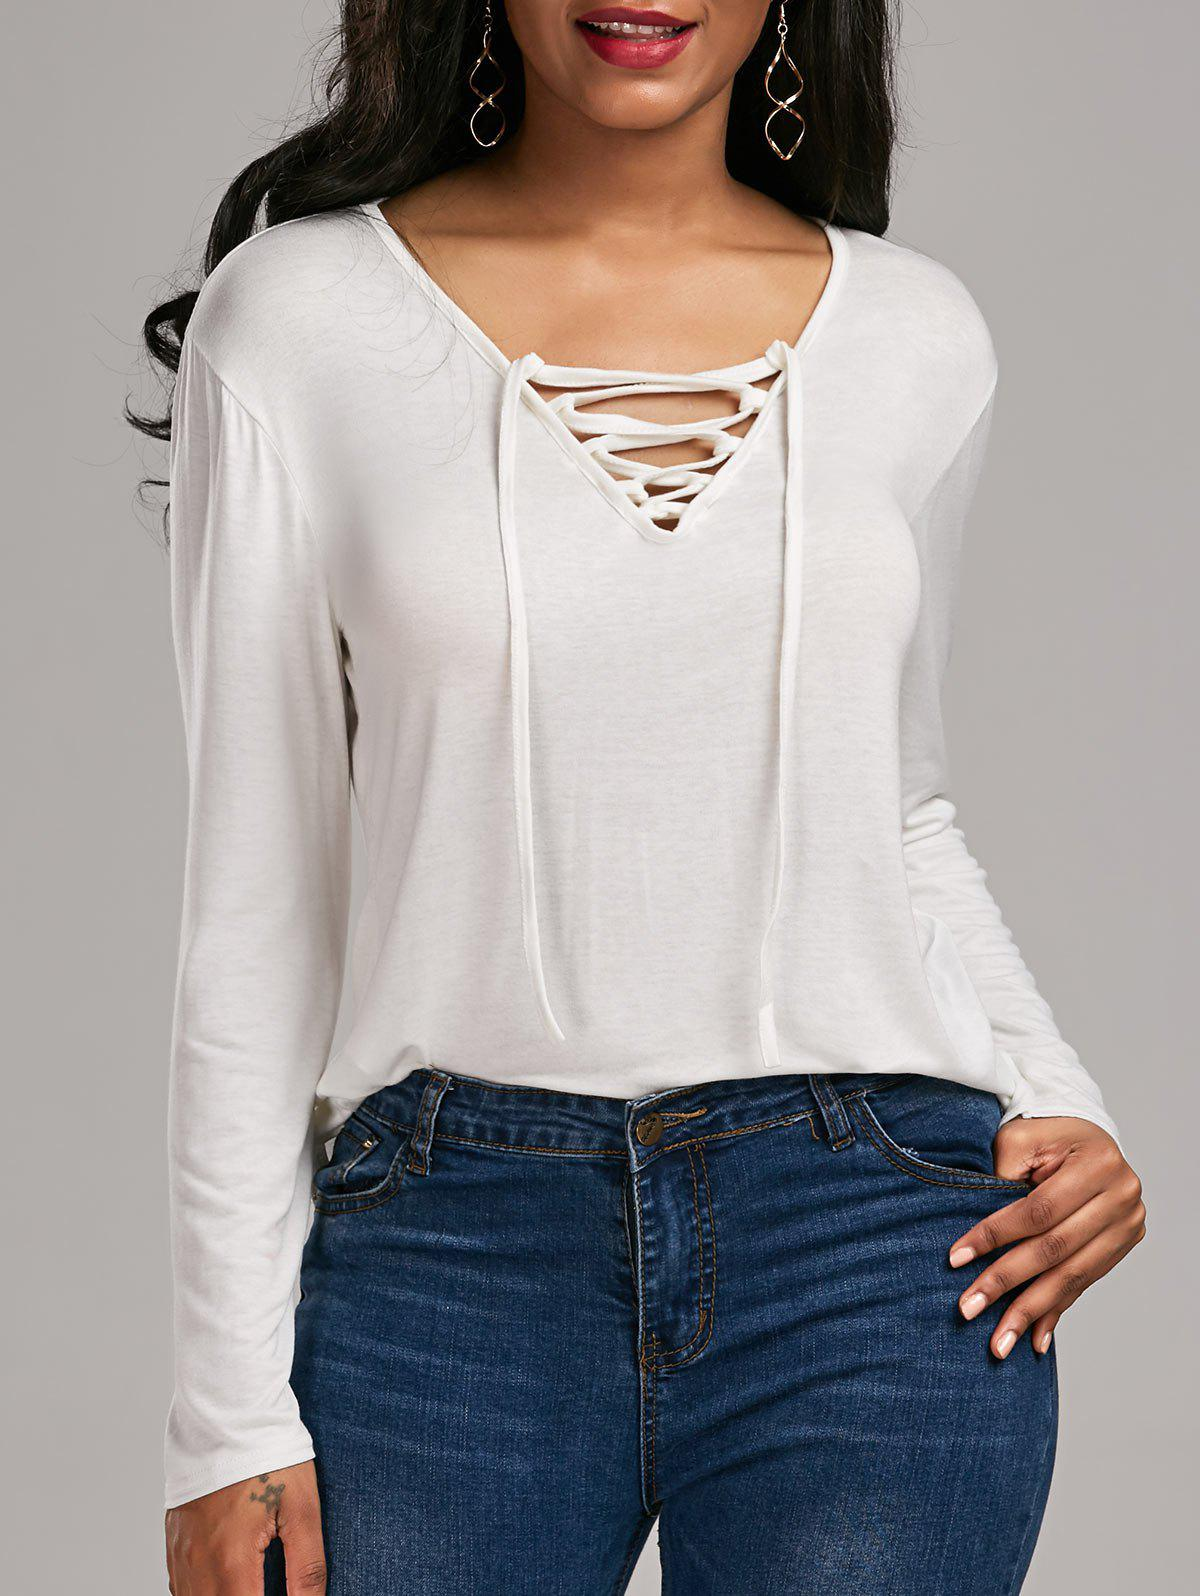 Lace Up Long Sleeve Tee sanctuary new tan long sleeve lace inset tee xs $49 dbfl